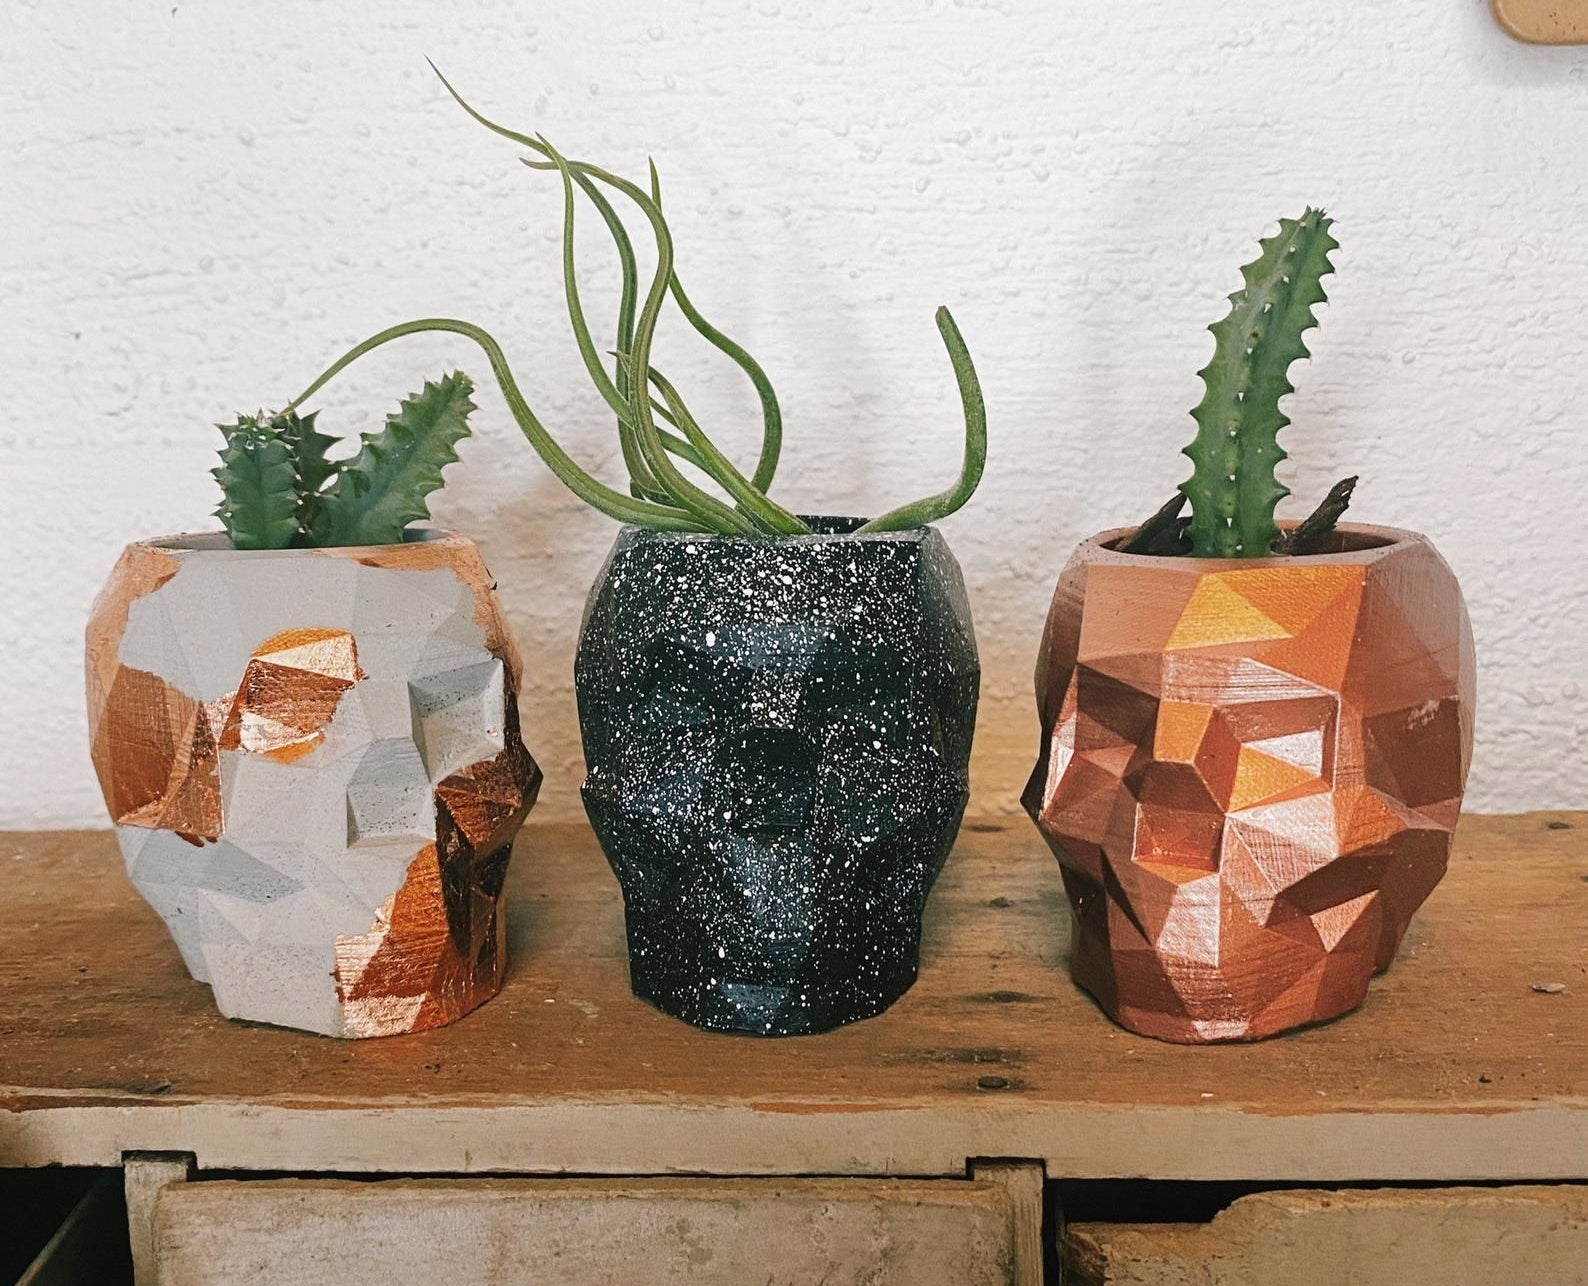 Three different concrete skill planters, one in concrete and gold speckle, one in black speckle, and one in copper